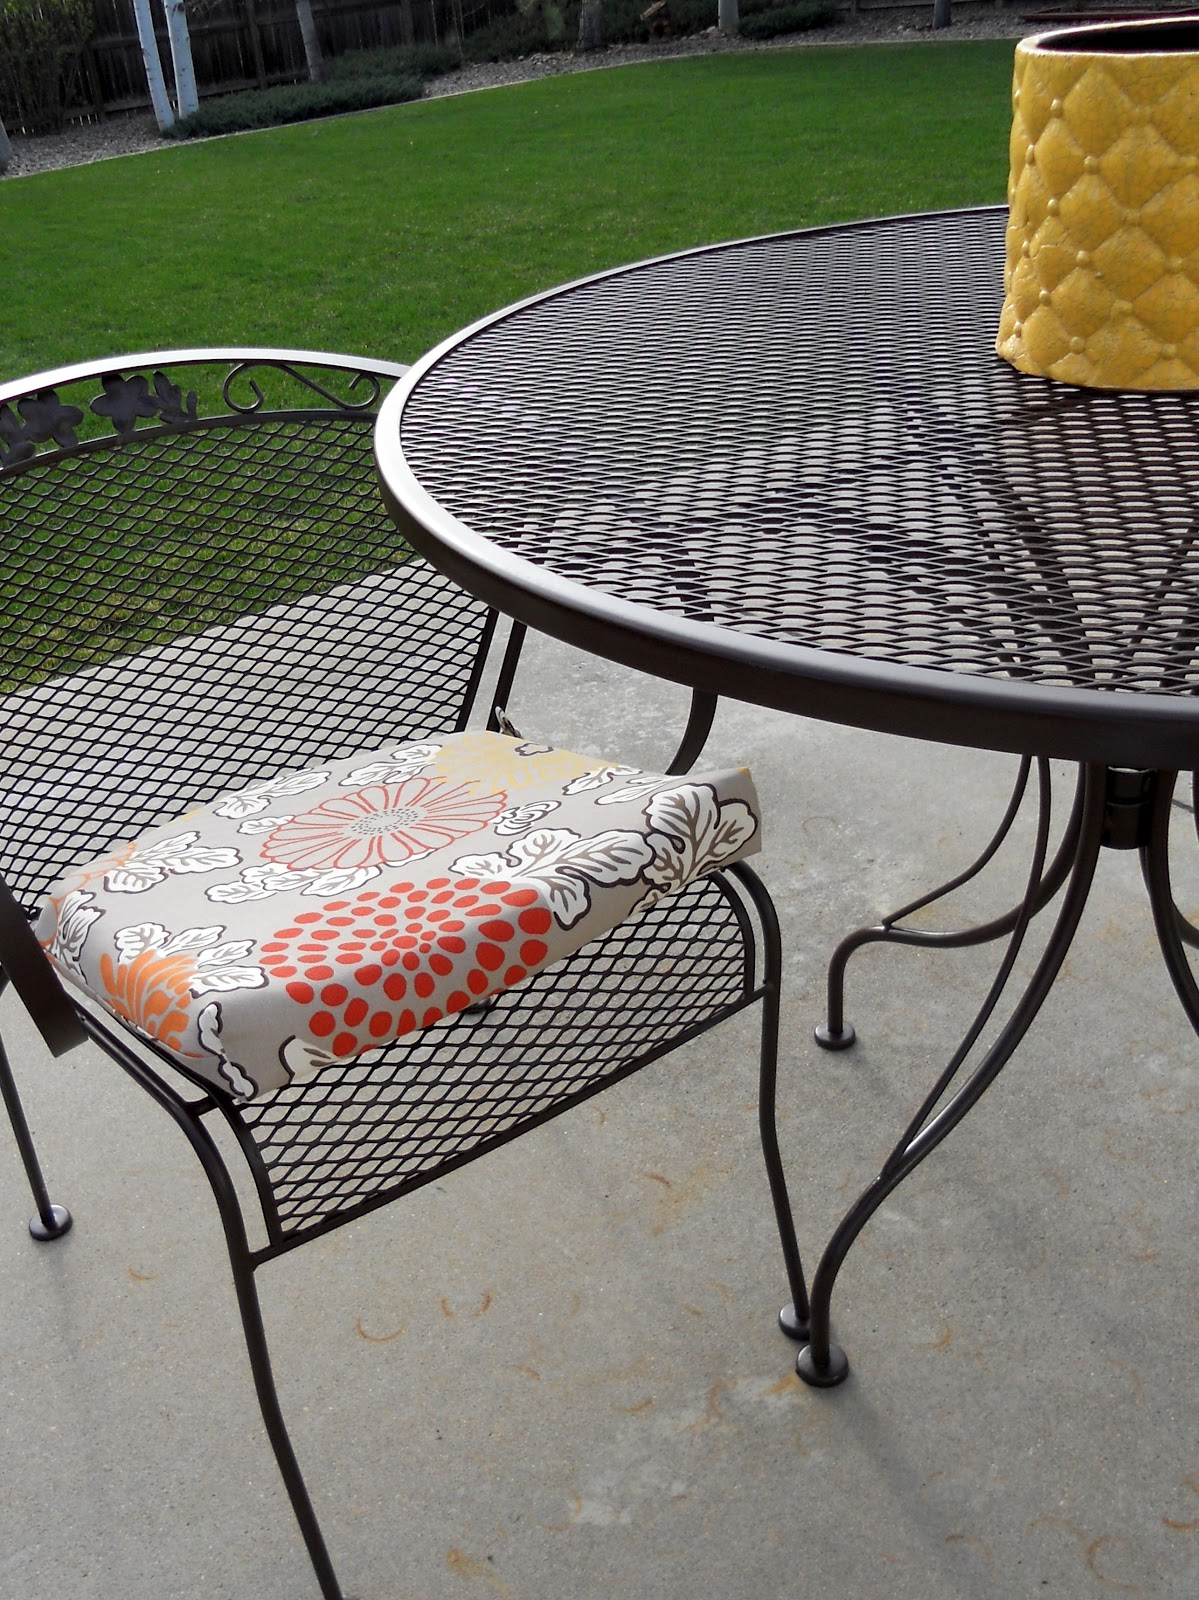 Painted iron patio furniture - Fyi May I Recommend Scotts Turf Builder As A Really Good Fertilizer For A Lawn It S The Second Best Thing To Spray Painting Your Lawn A Bright Spring